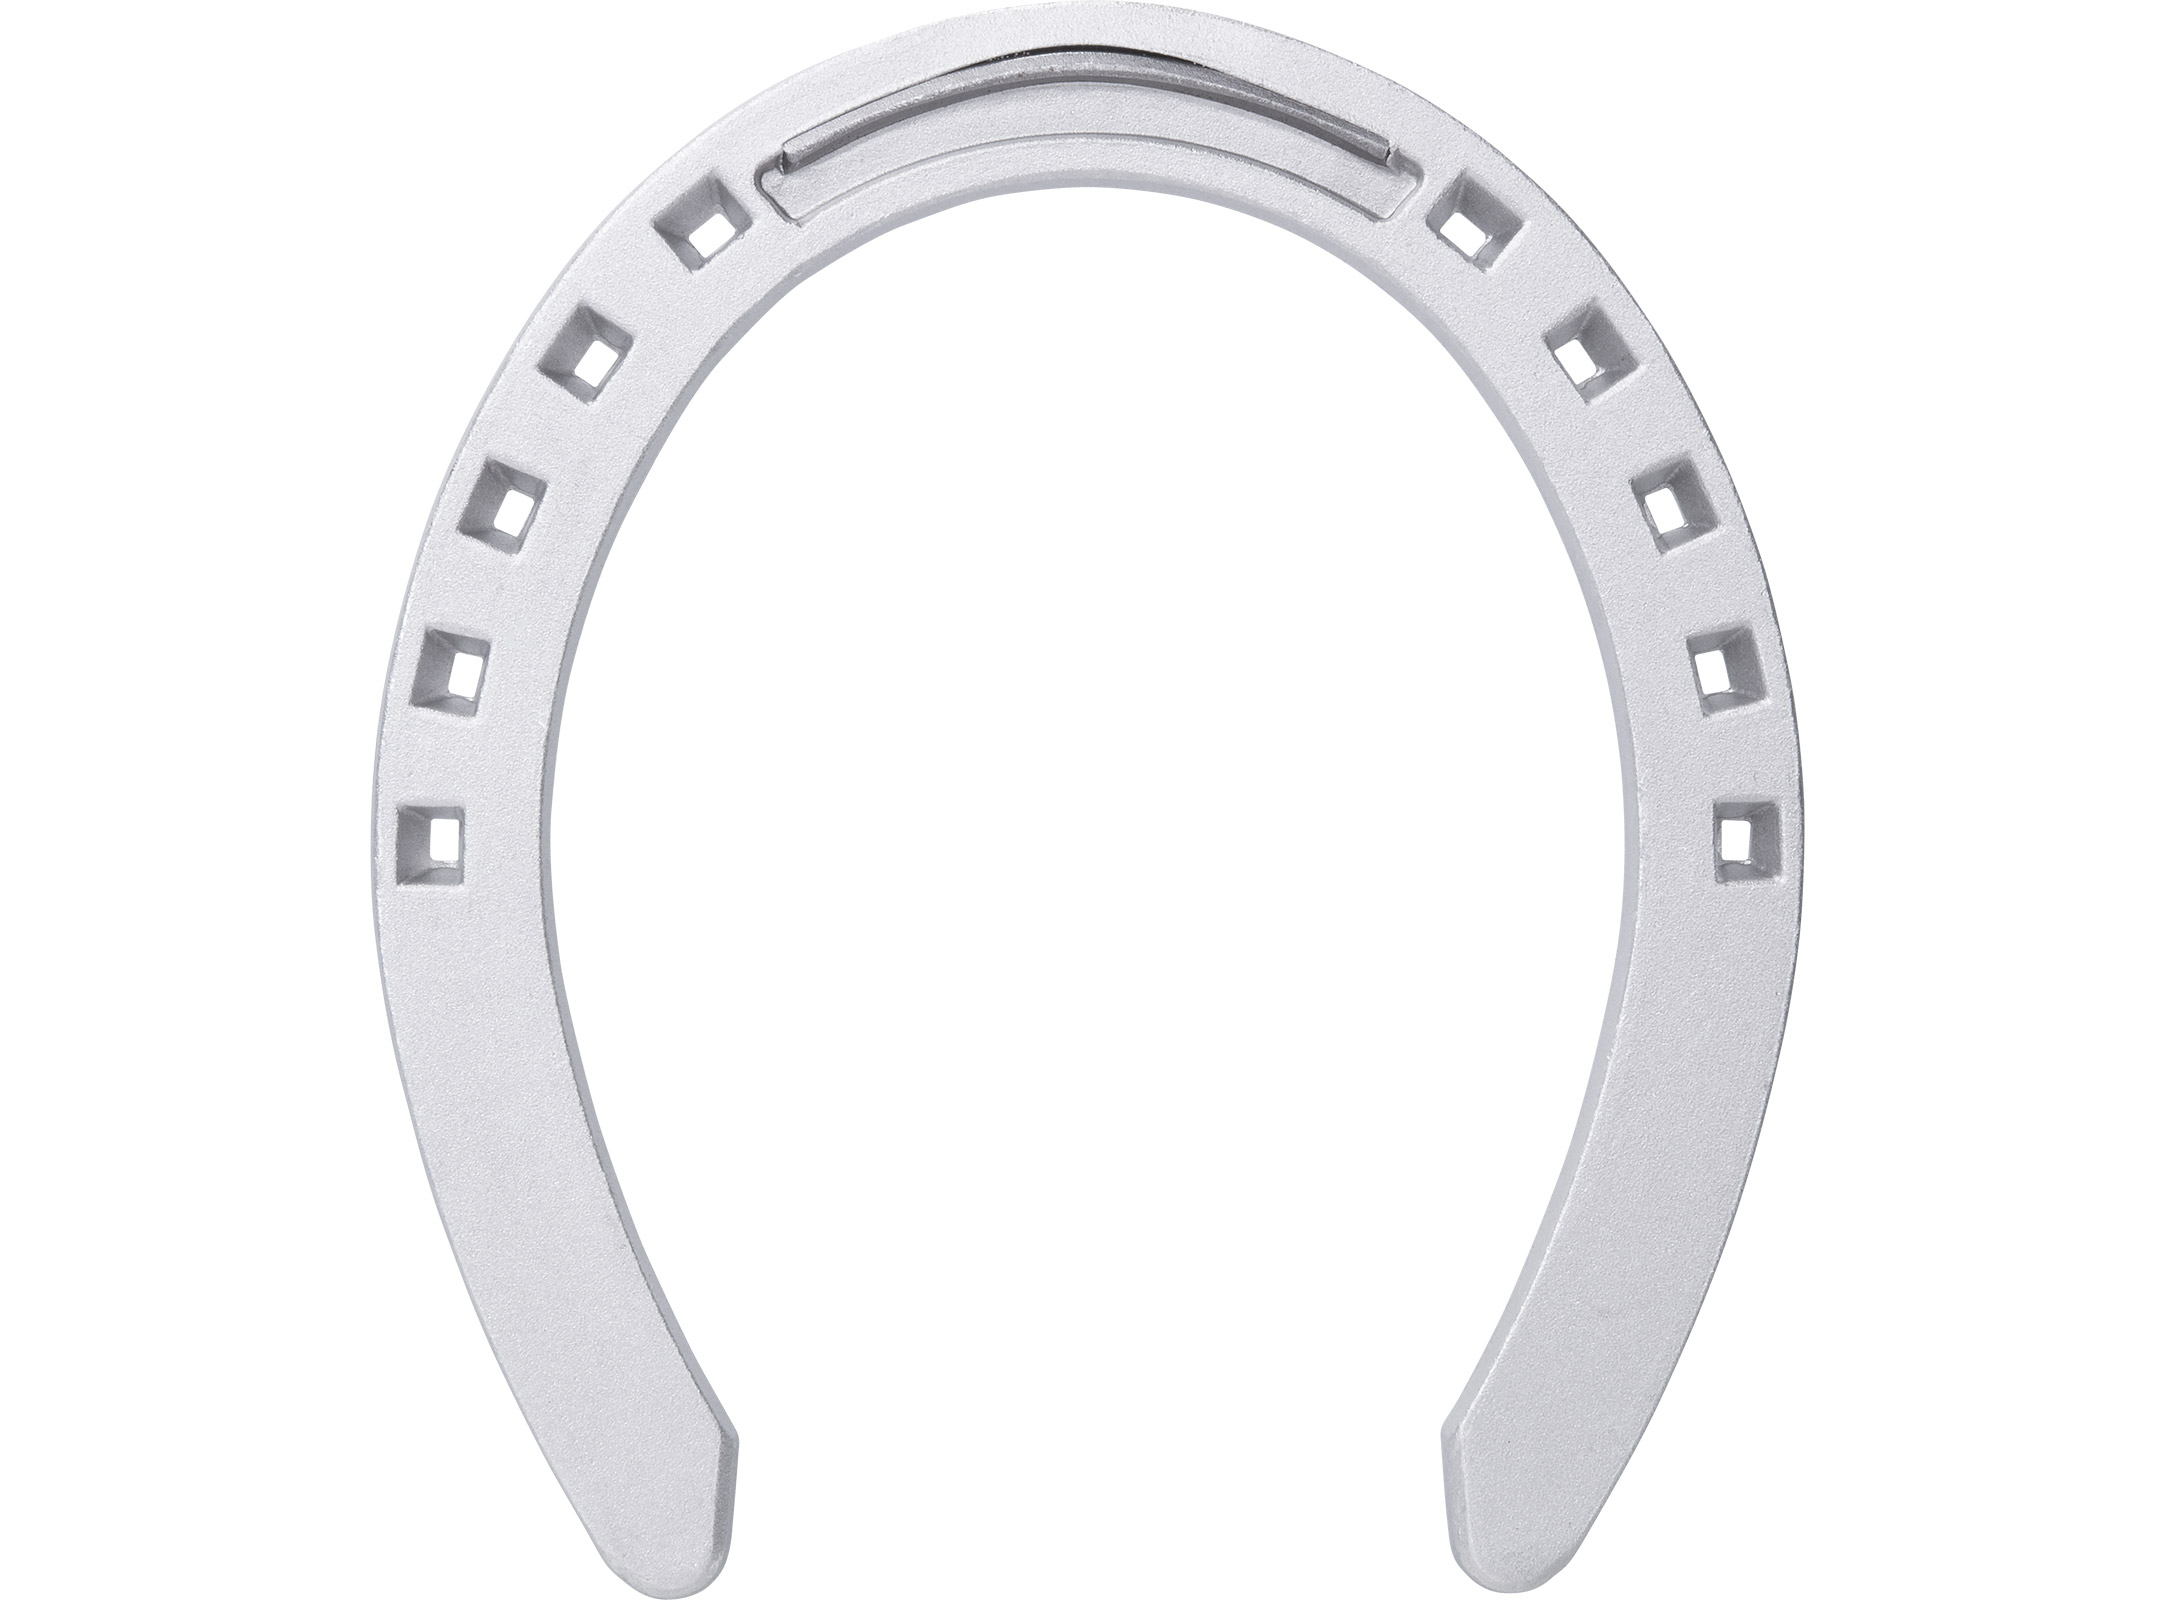 St. Croix Plain Aluminium horseshoe, bottom side view